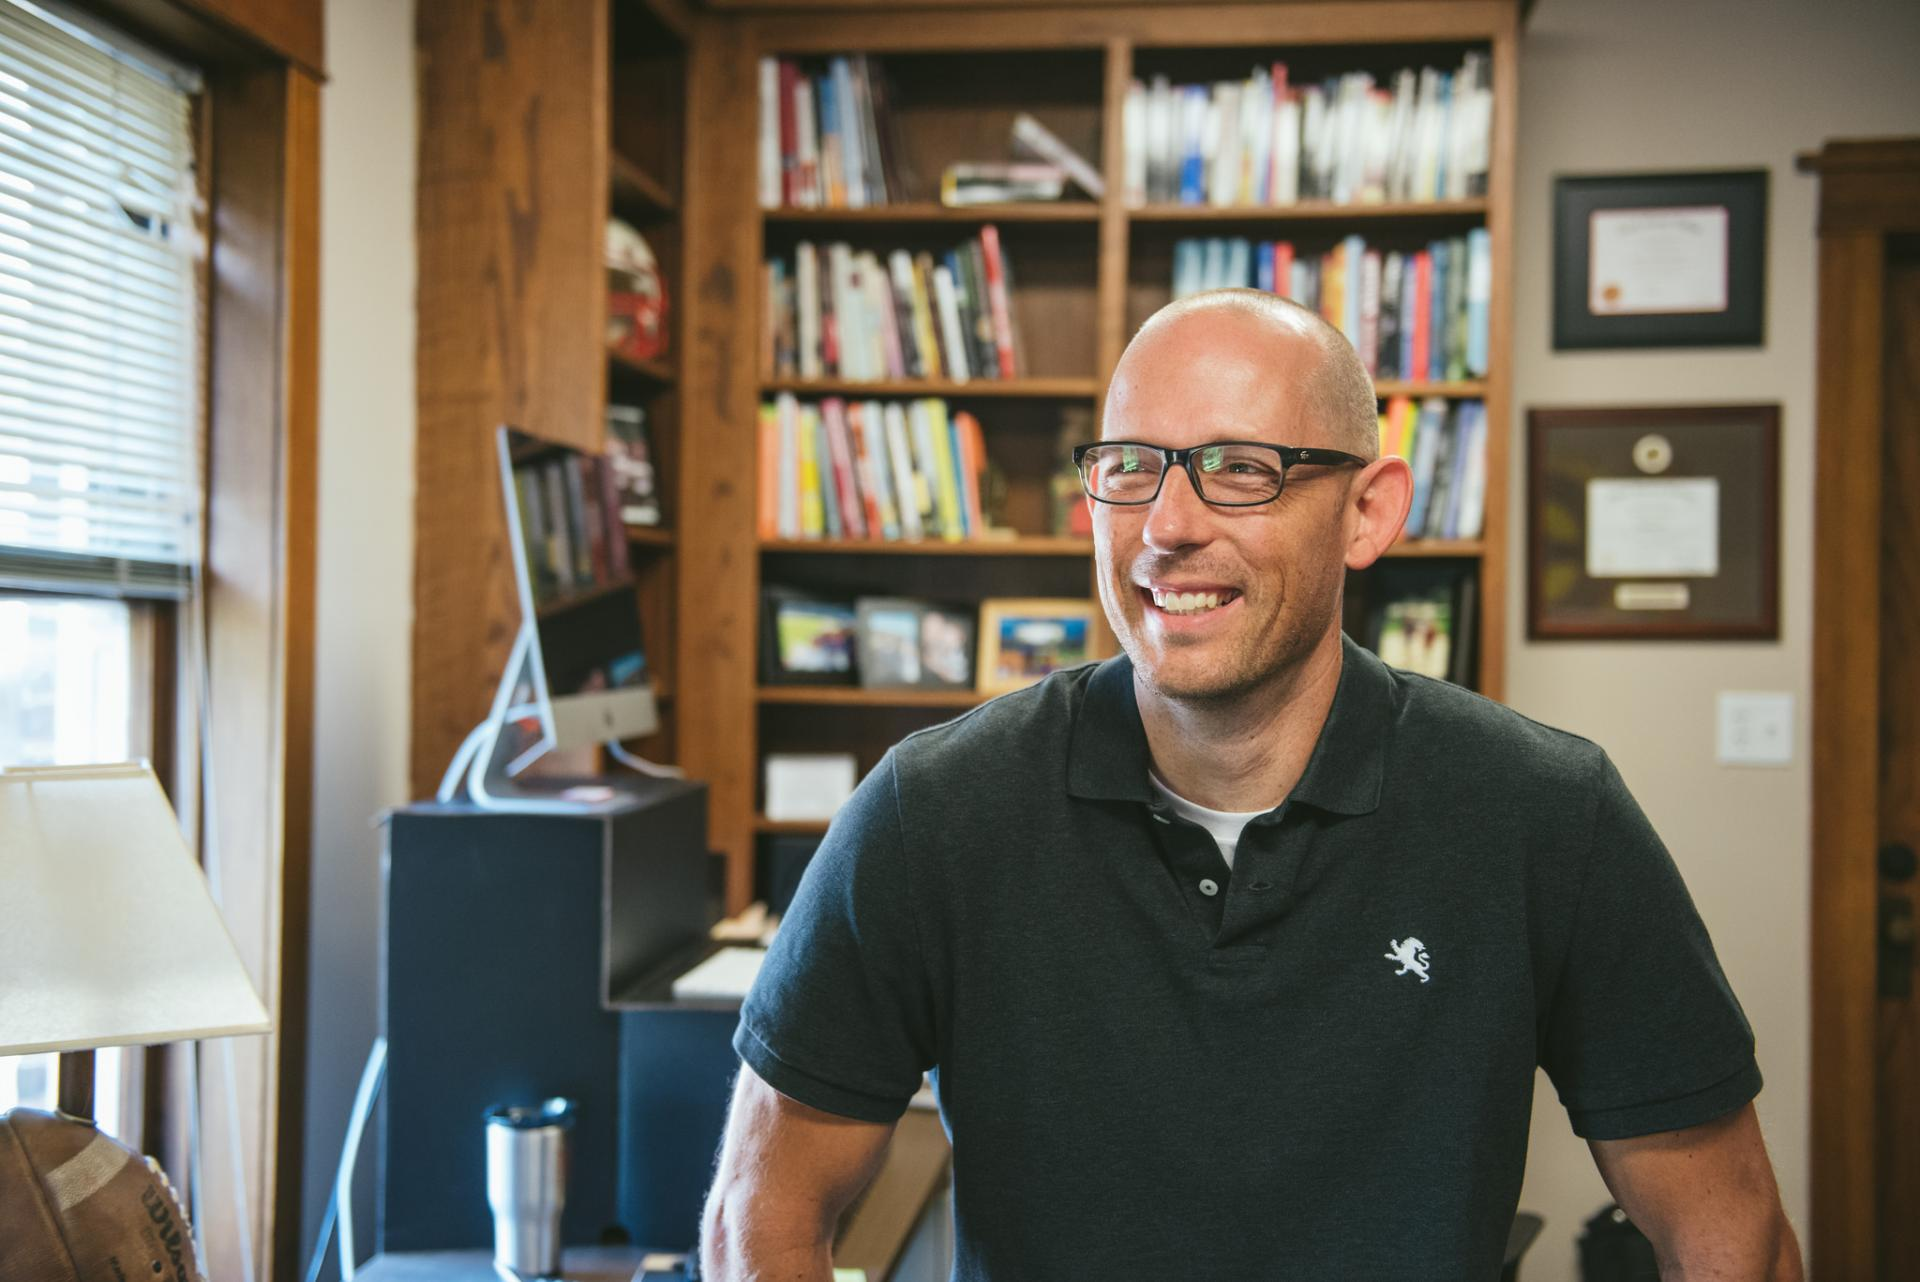 Jeremy Gudauskas '99/M '11, assistant vice president and co-director of the Center for Social Impact